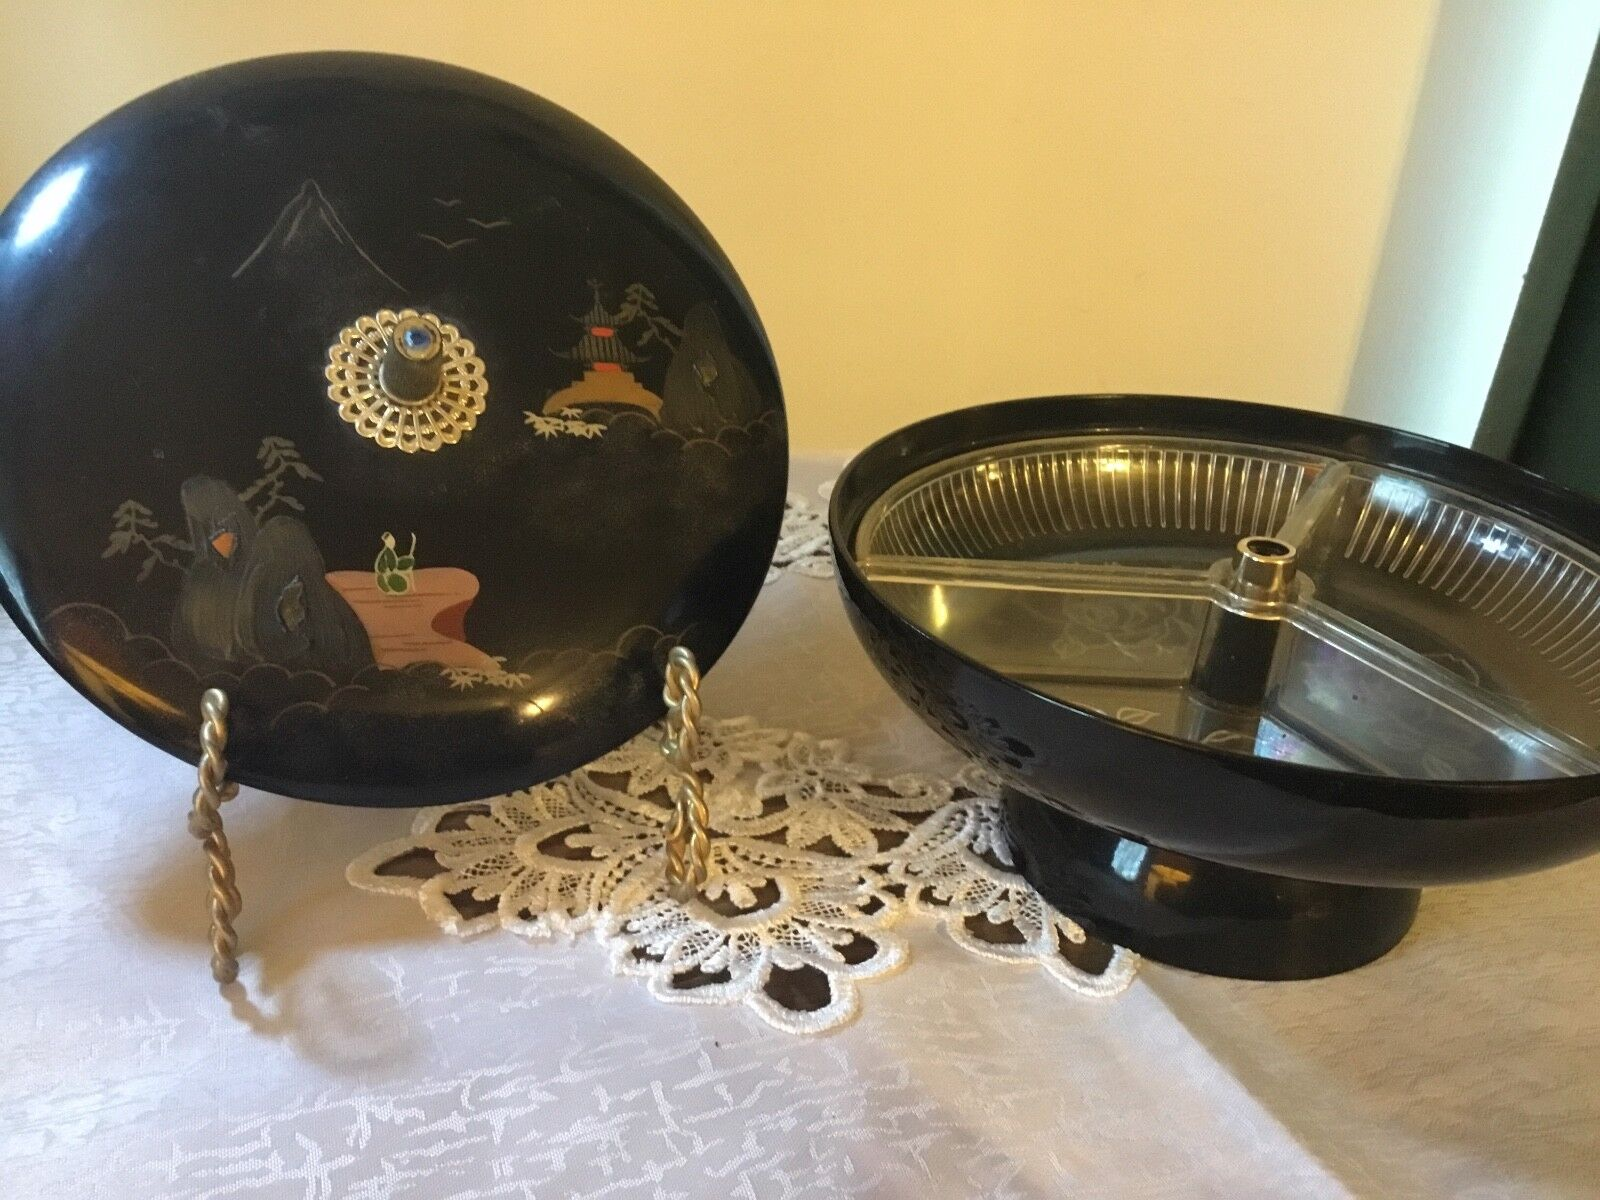 AIZU JAPANESE HAND PAINTING BLACK LACQUER Covered Section Bowl  - $20.00